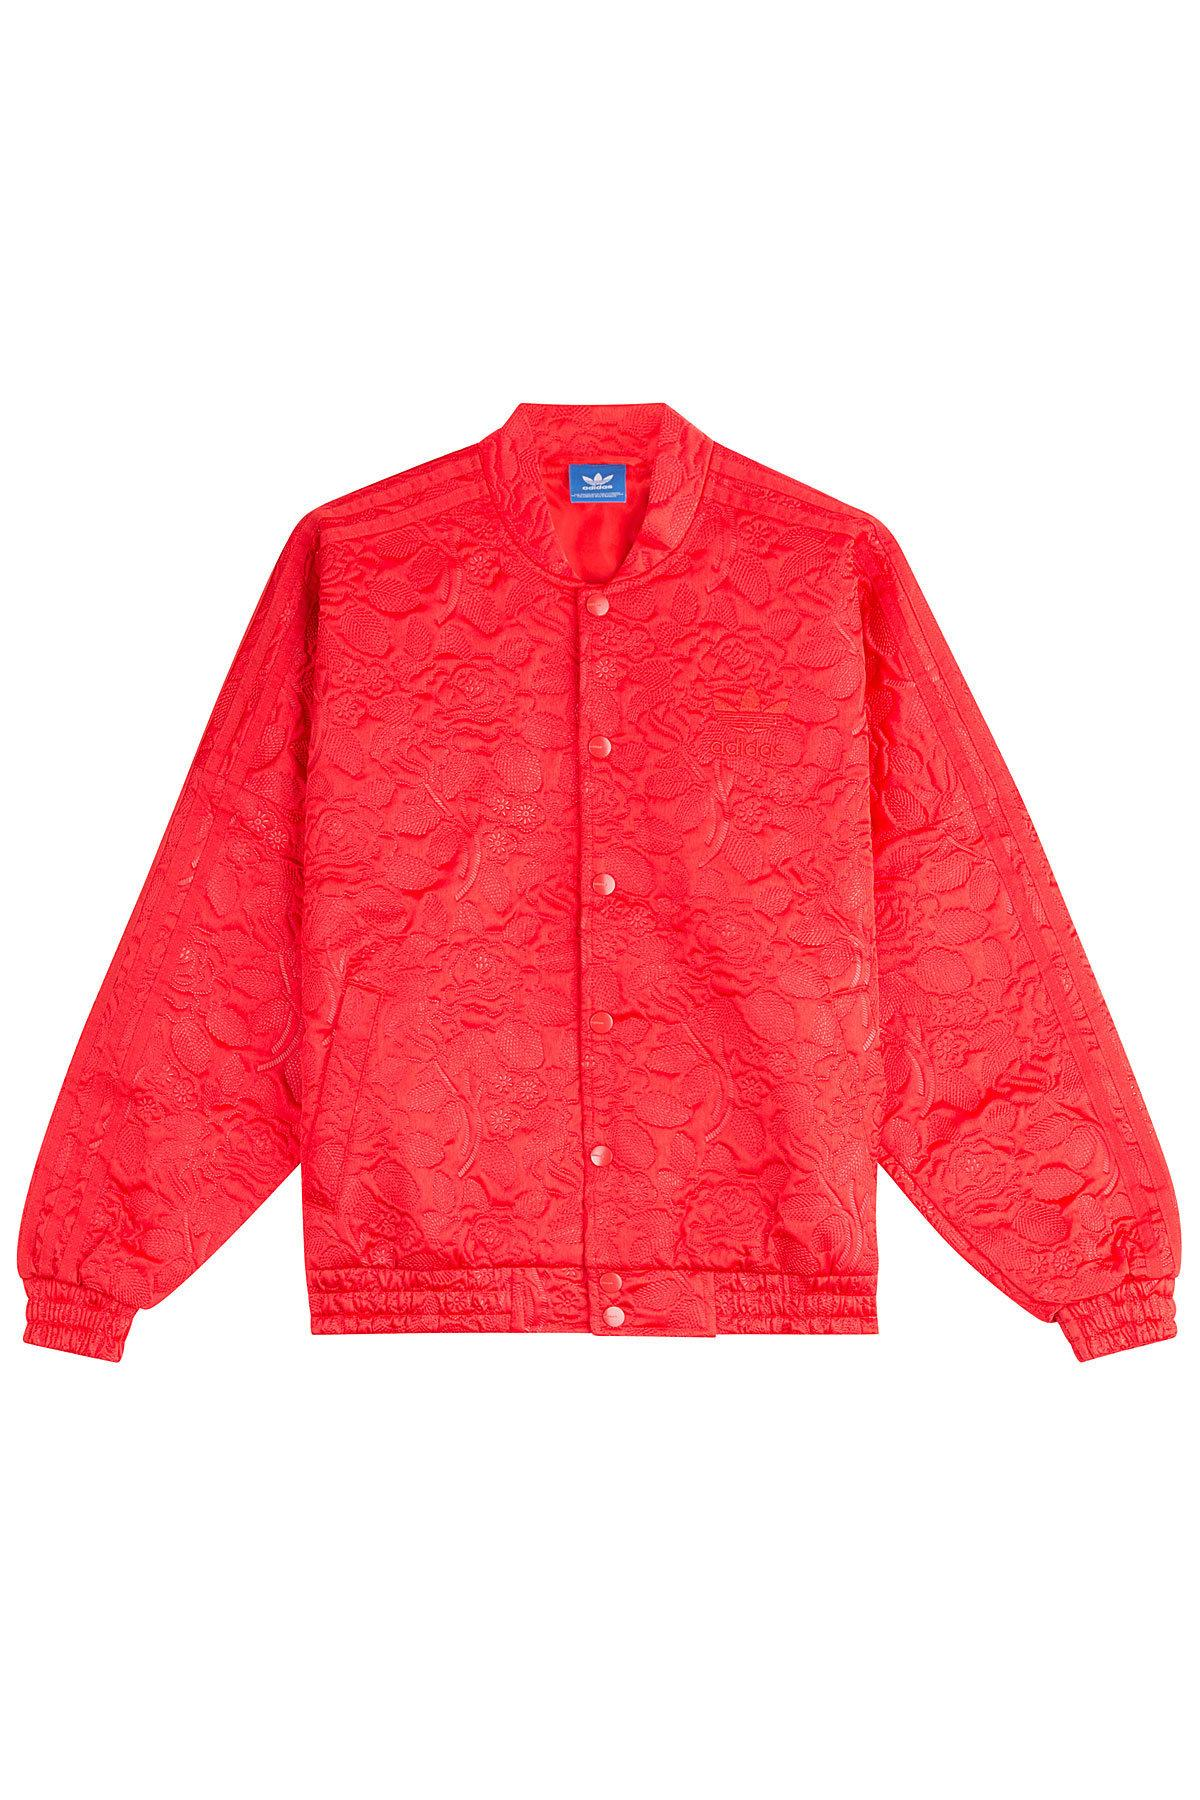 adidas originals jacket red wwwimgkidcom the image